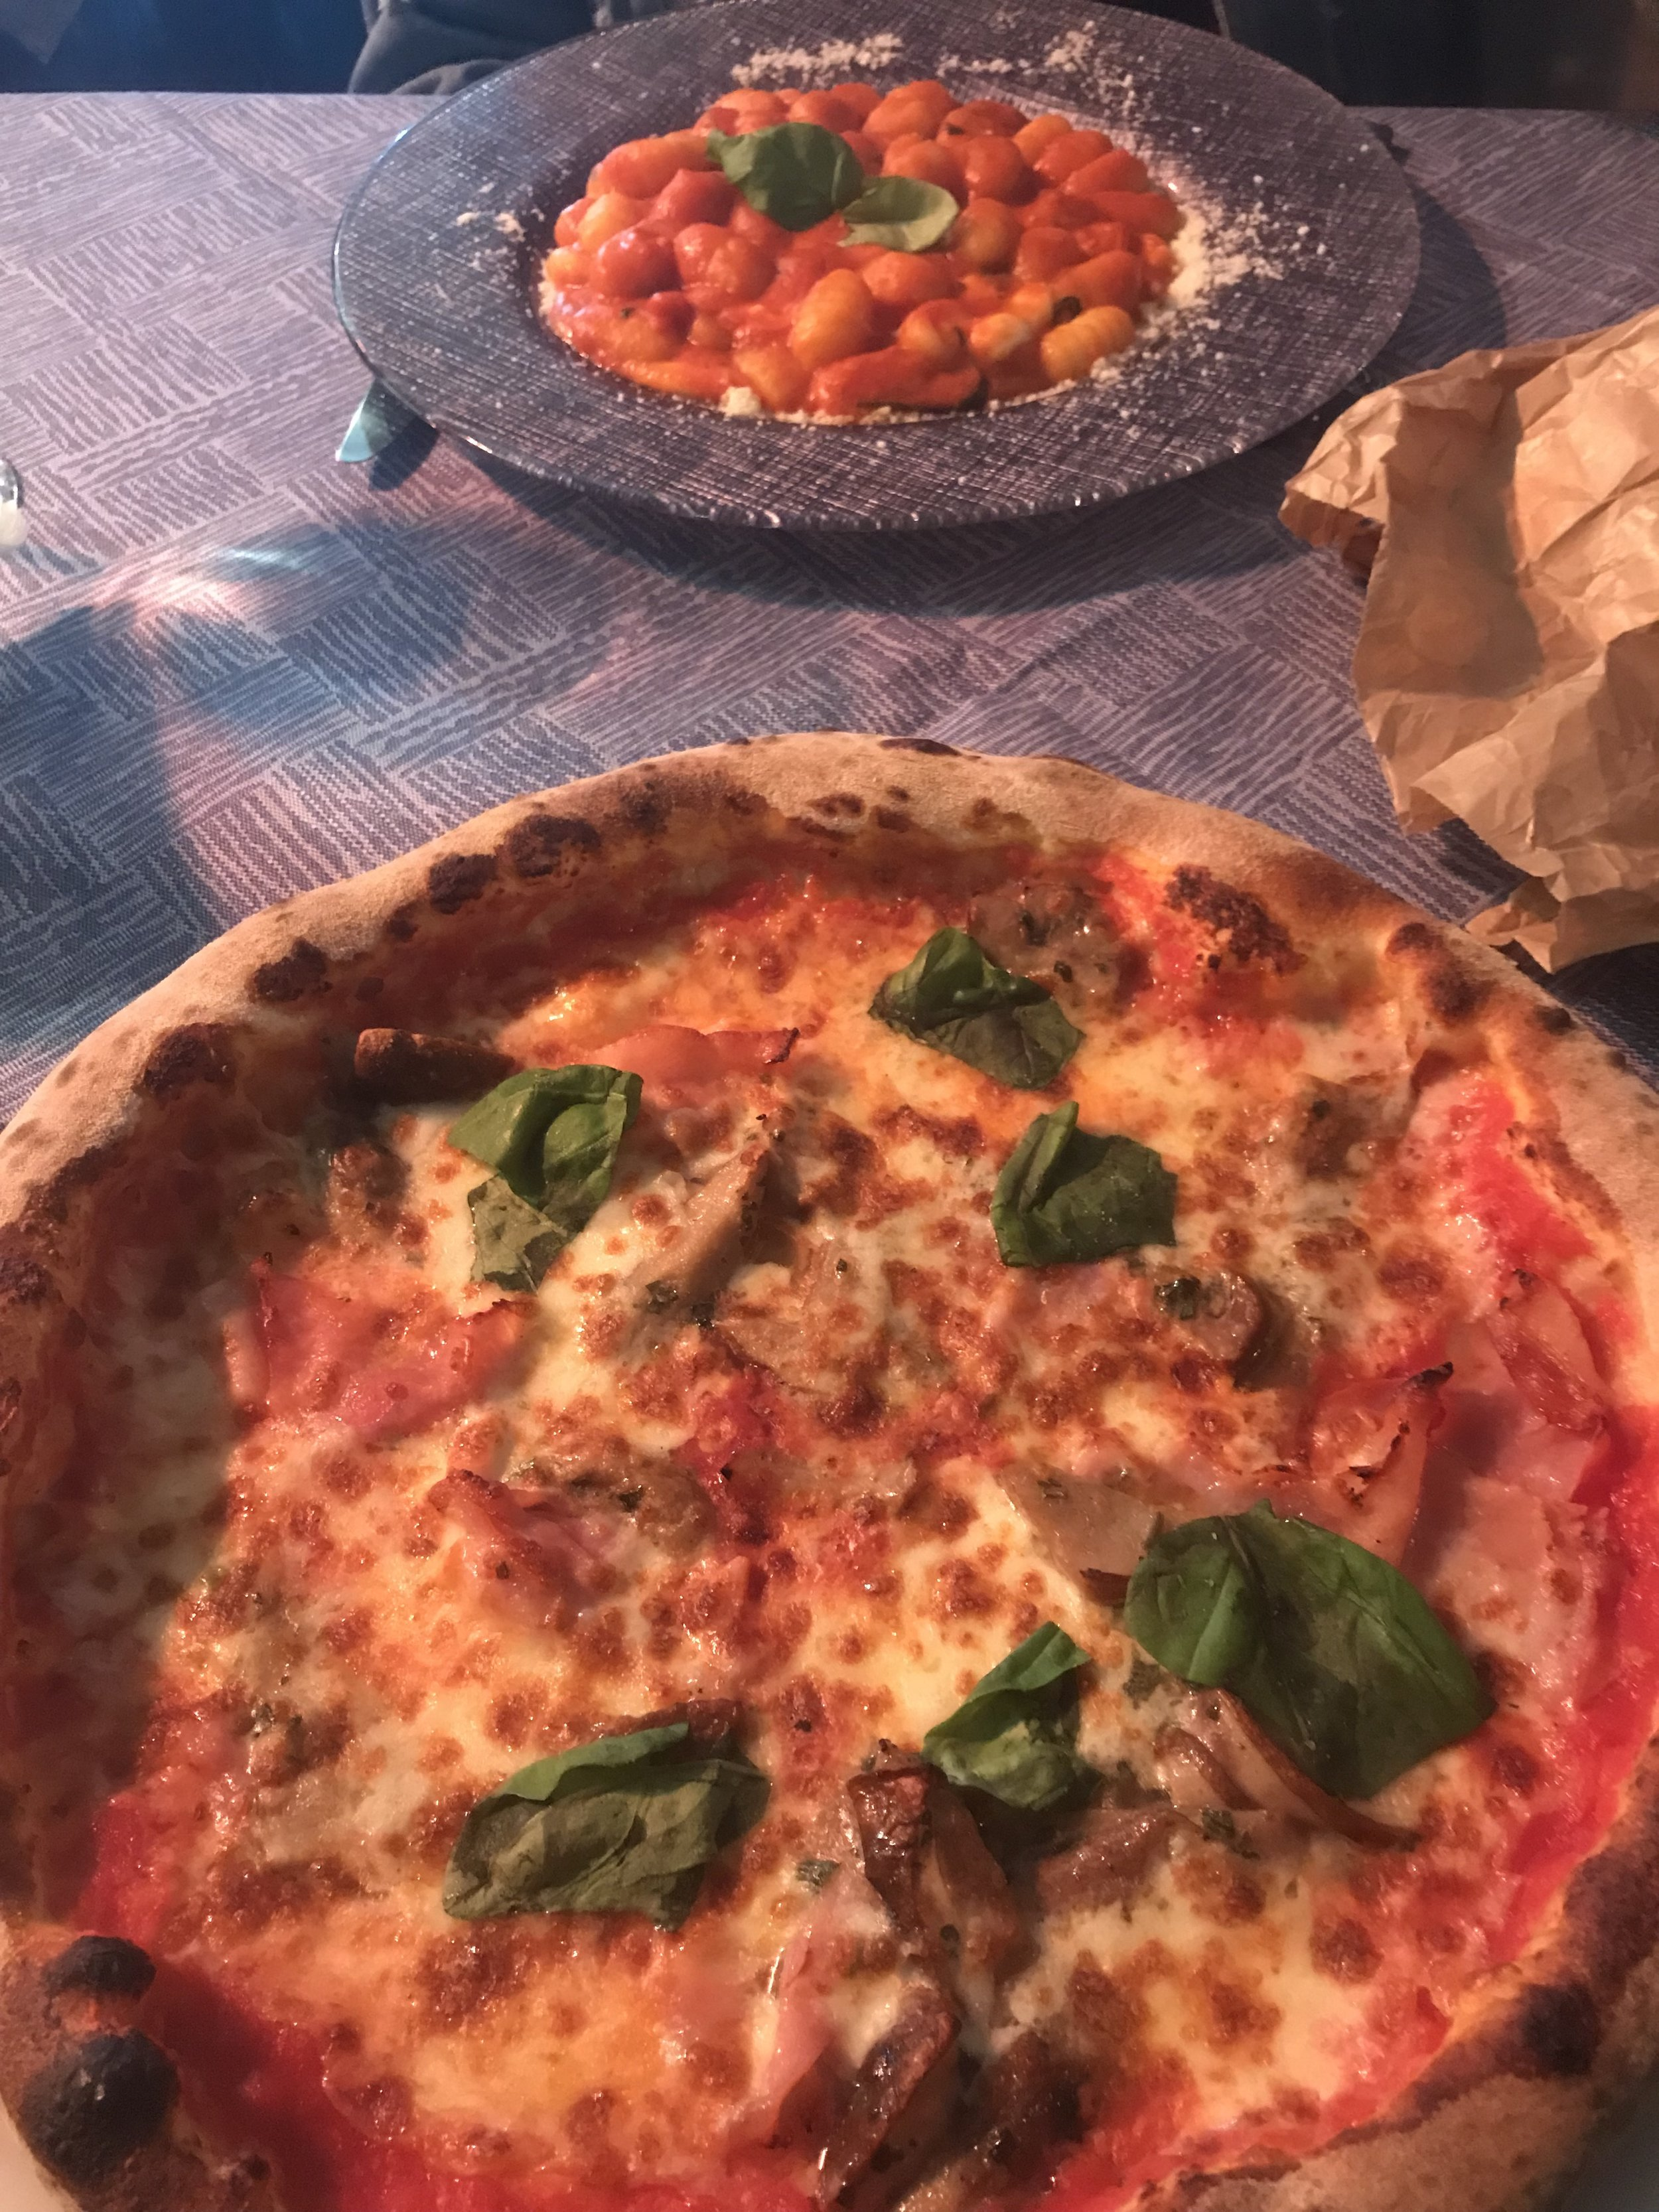 Sure the pizza looks good, but those gnocchi are no slouch either!